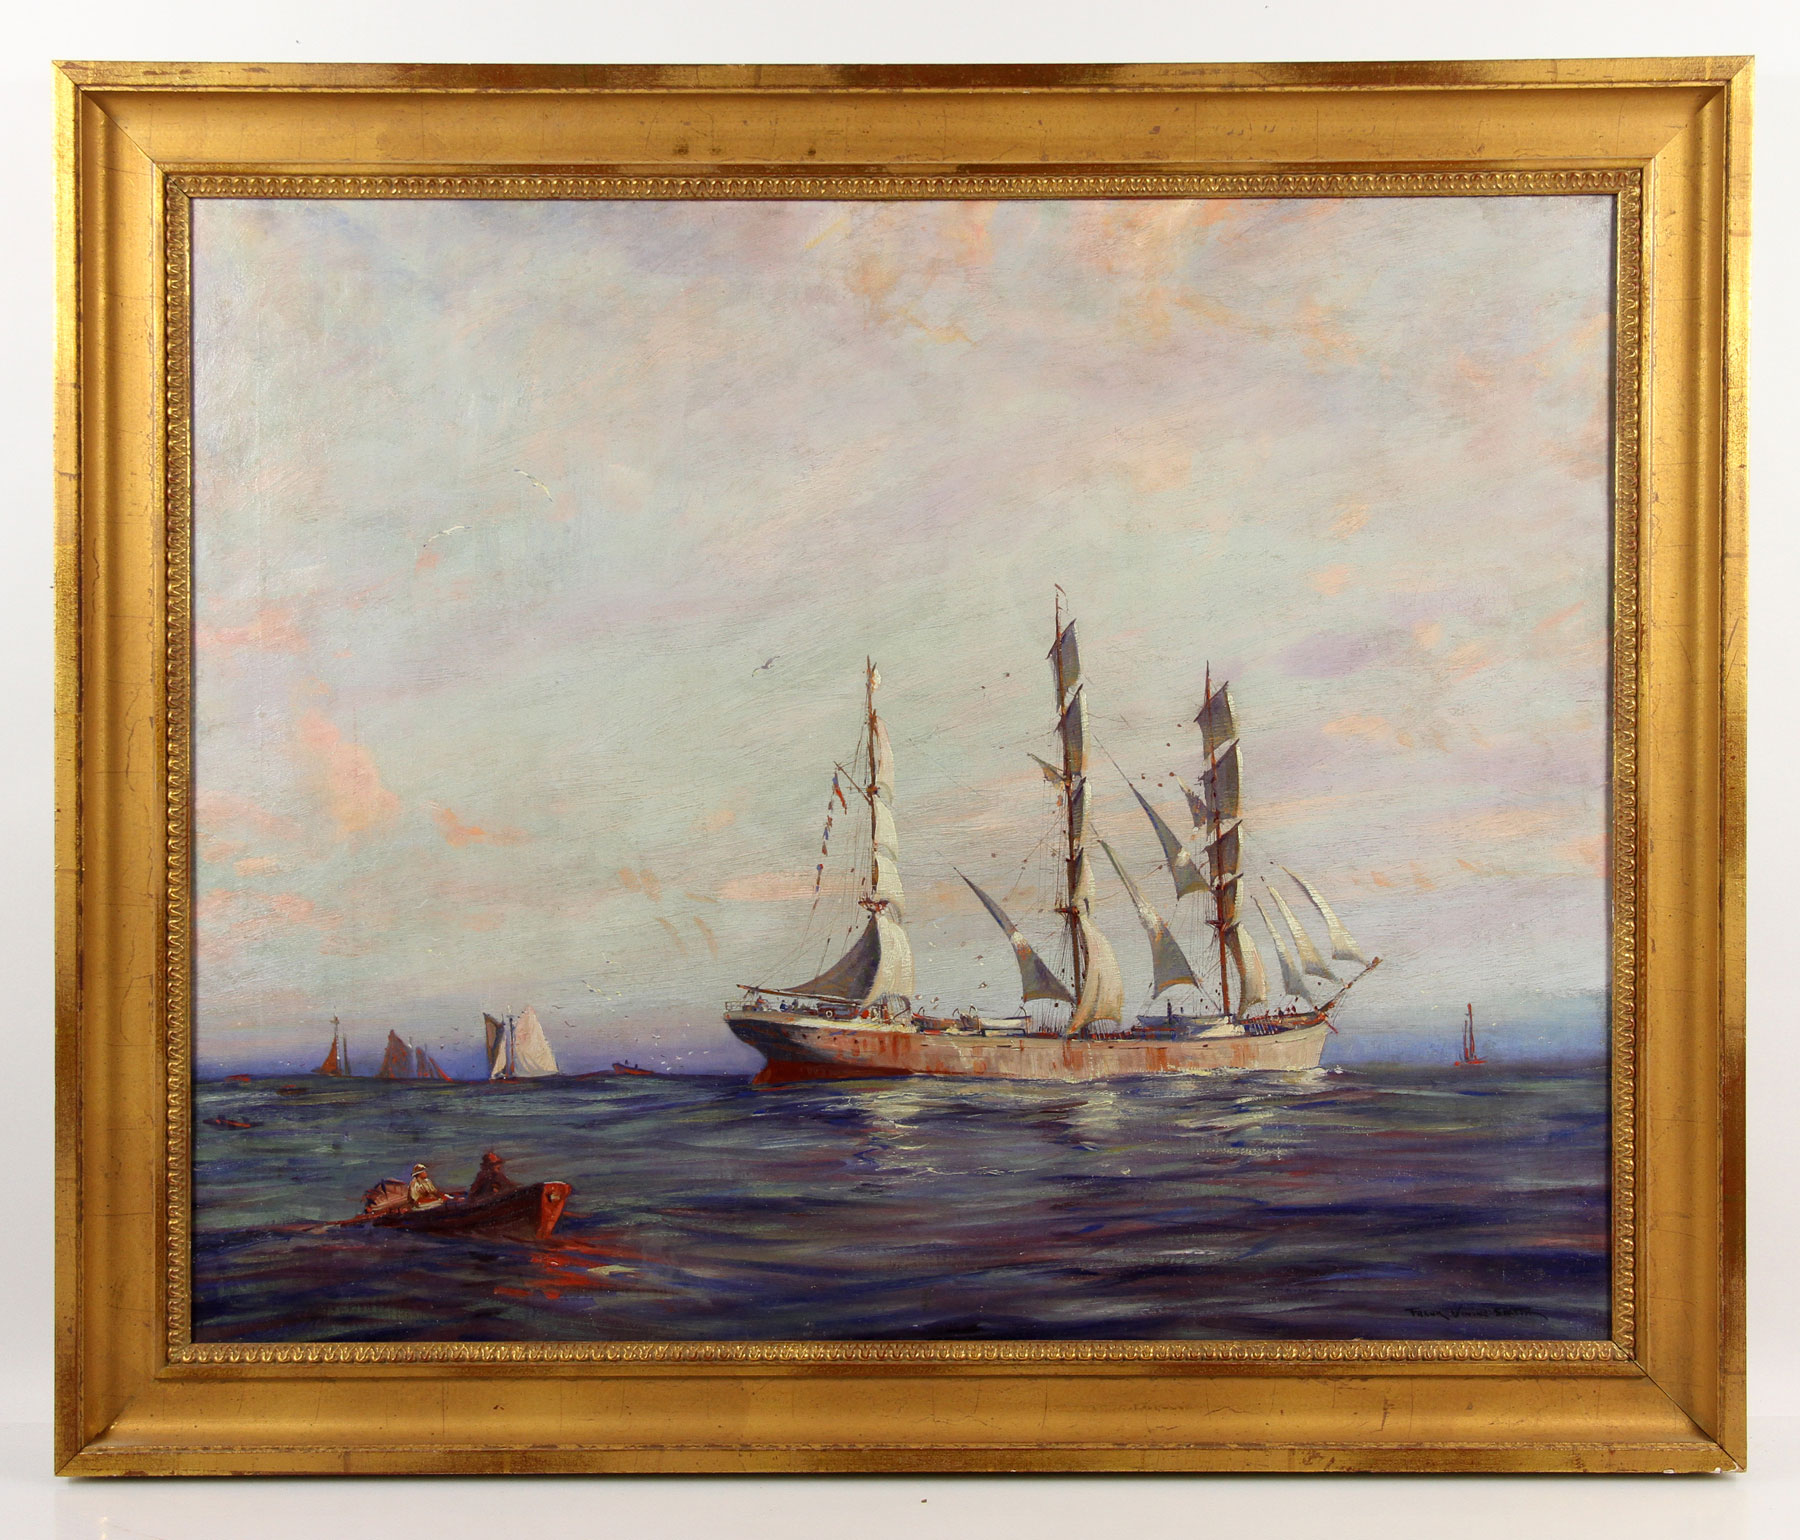 Kaminski Auctions December 13th Holiday Auction Features